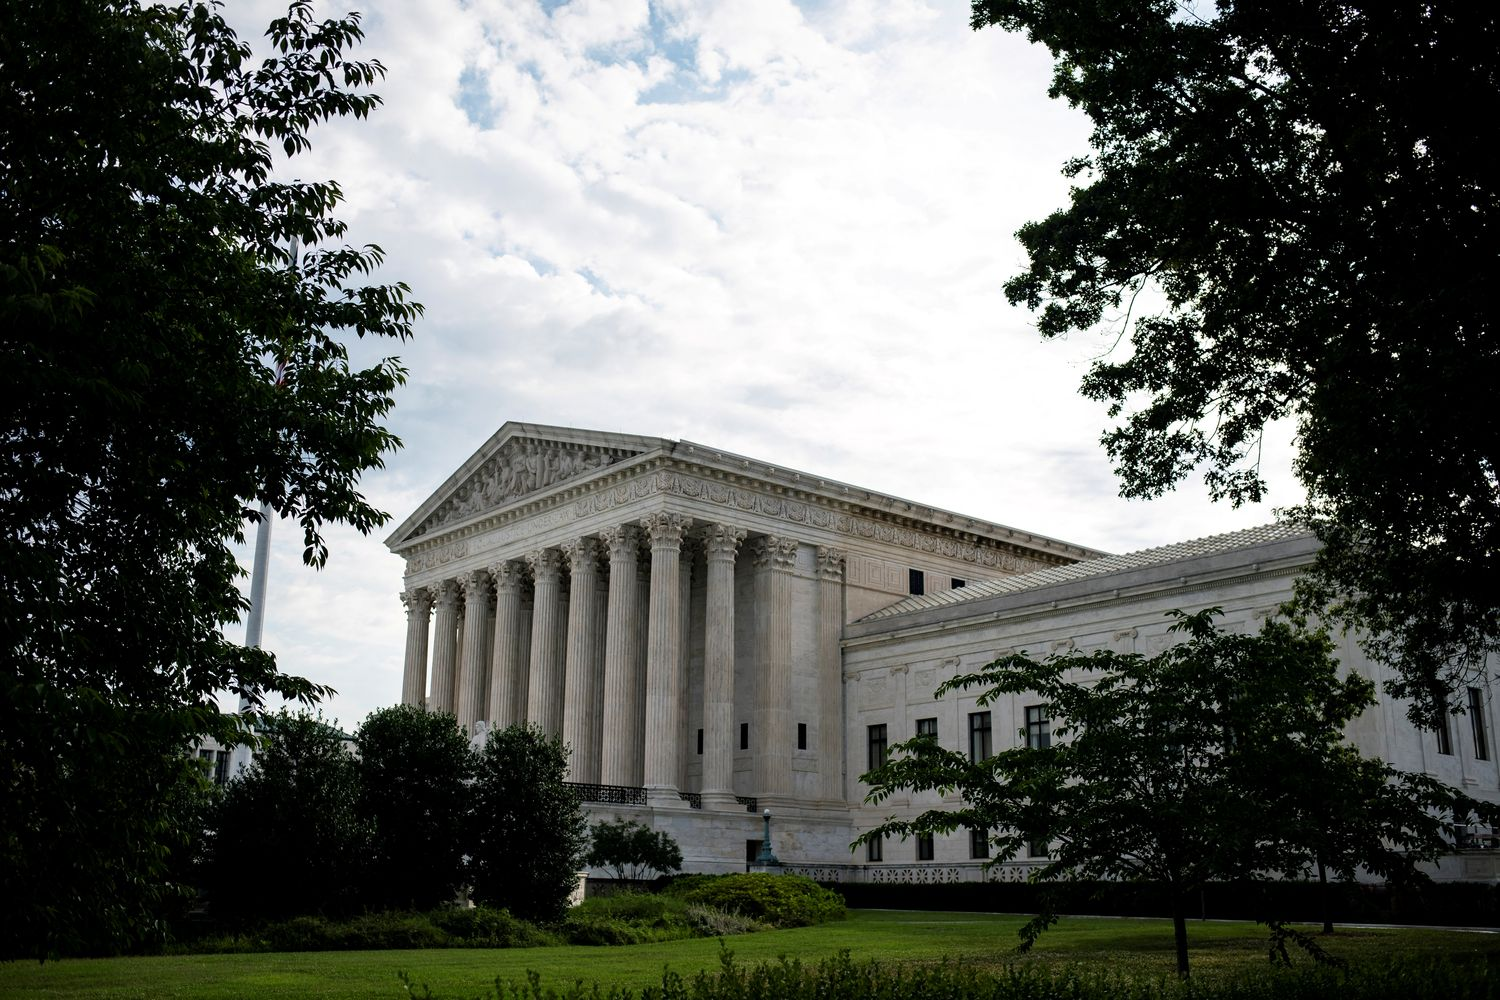 Supreme Court strikes down restrictive abortion law; Roberts concurrence provides fifth vote